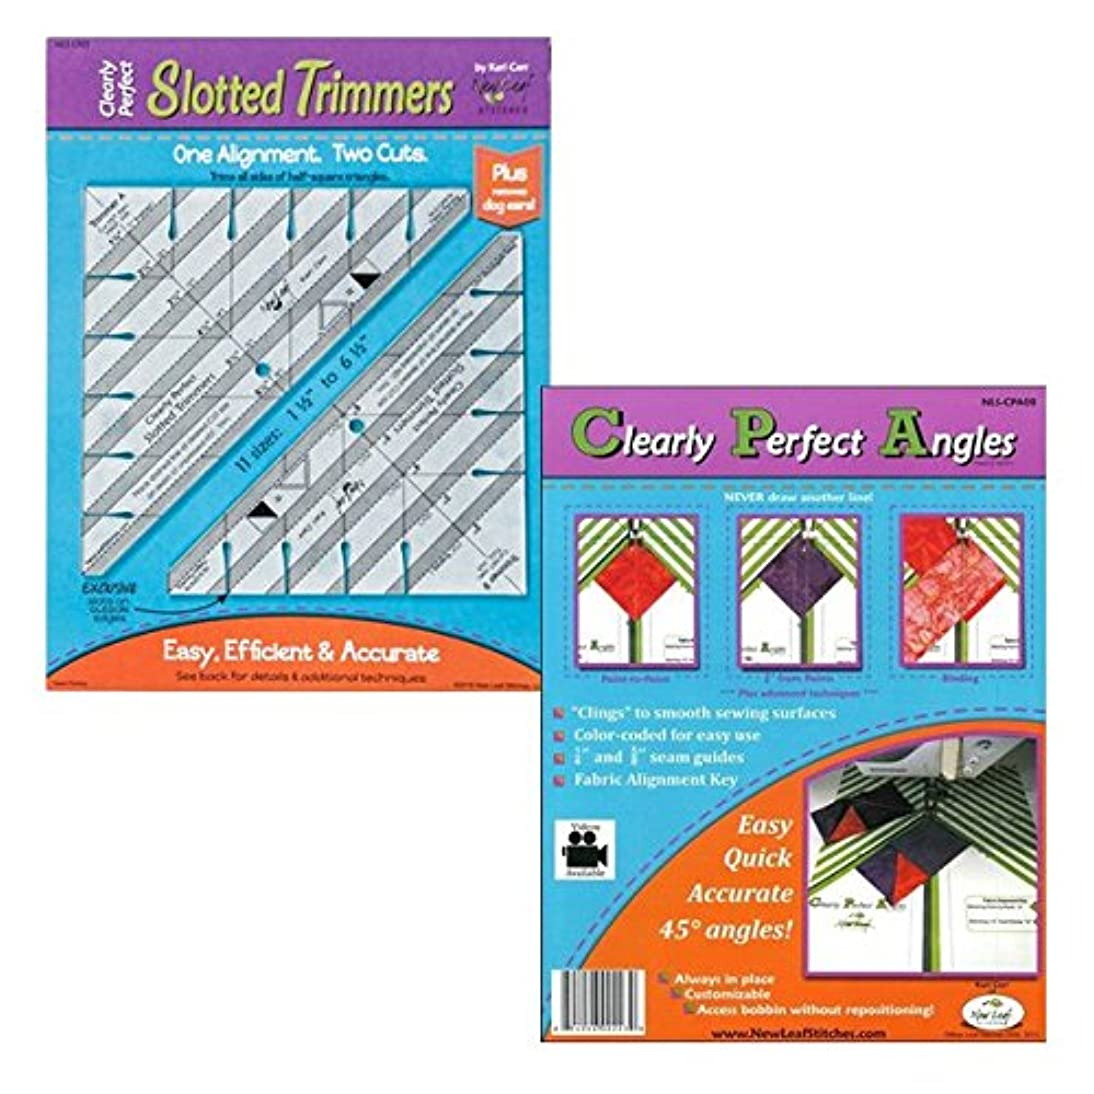 New Leaf Stitches NLSCPST Clearly Perfect Slotted Trimmers Bundled with NLSCPA08 Clearly Perfect Angle Sewing Templates